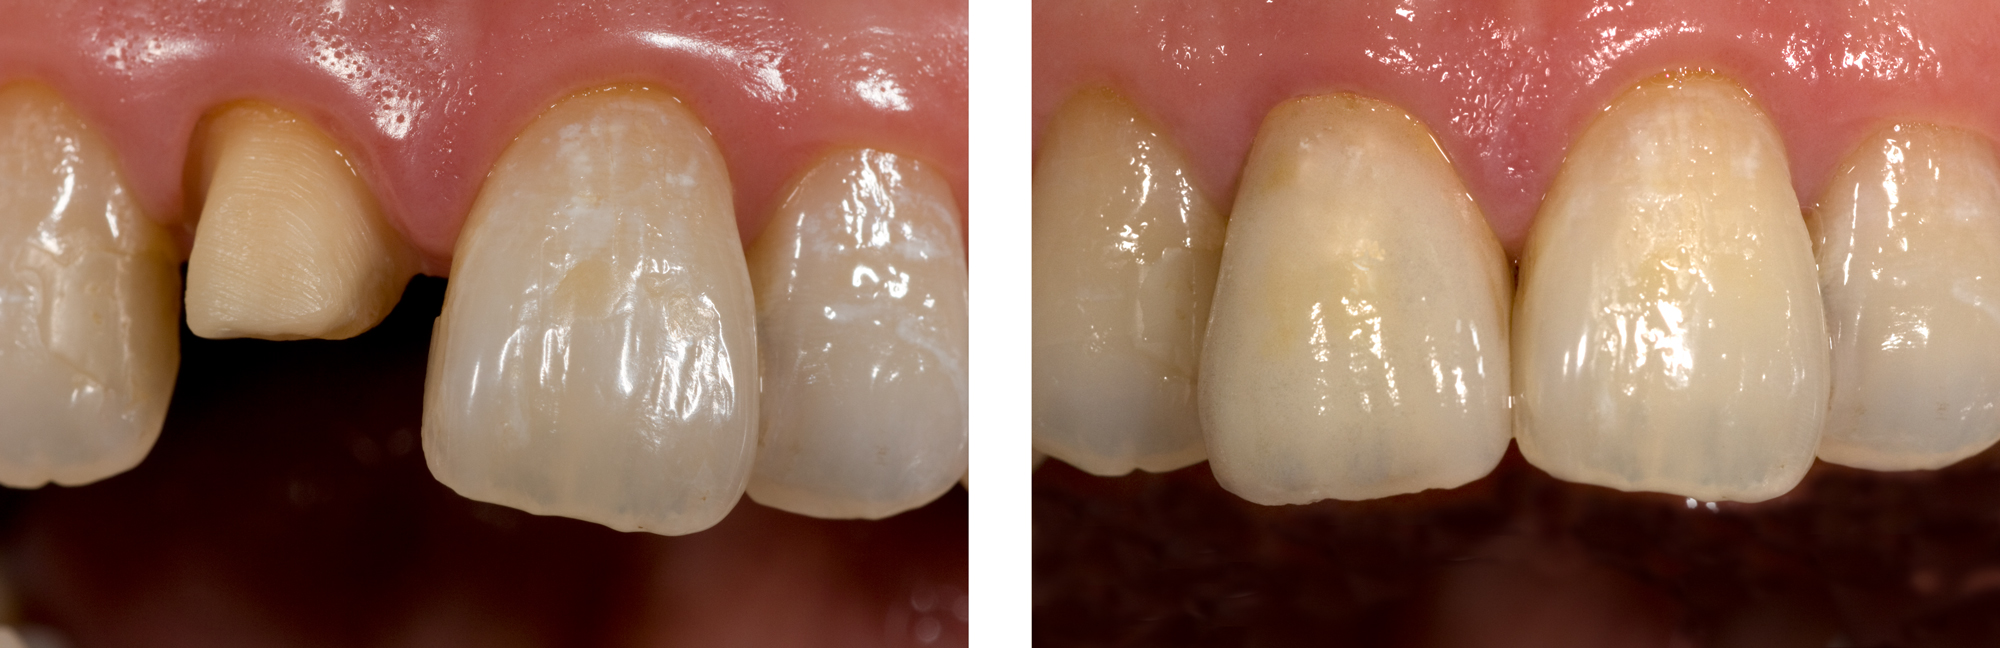 Single-Central-James-Wong-Ian-Chen-B--A by Ron Winter of Fabulous Teeth @ Seaside Dental Laboratory & Clinic.jpg